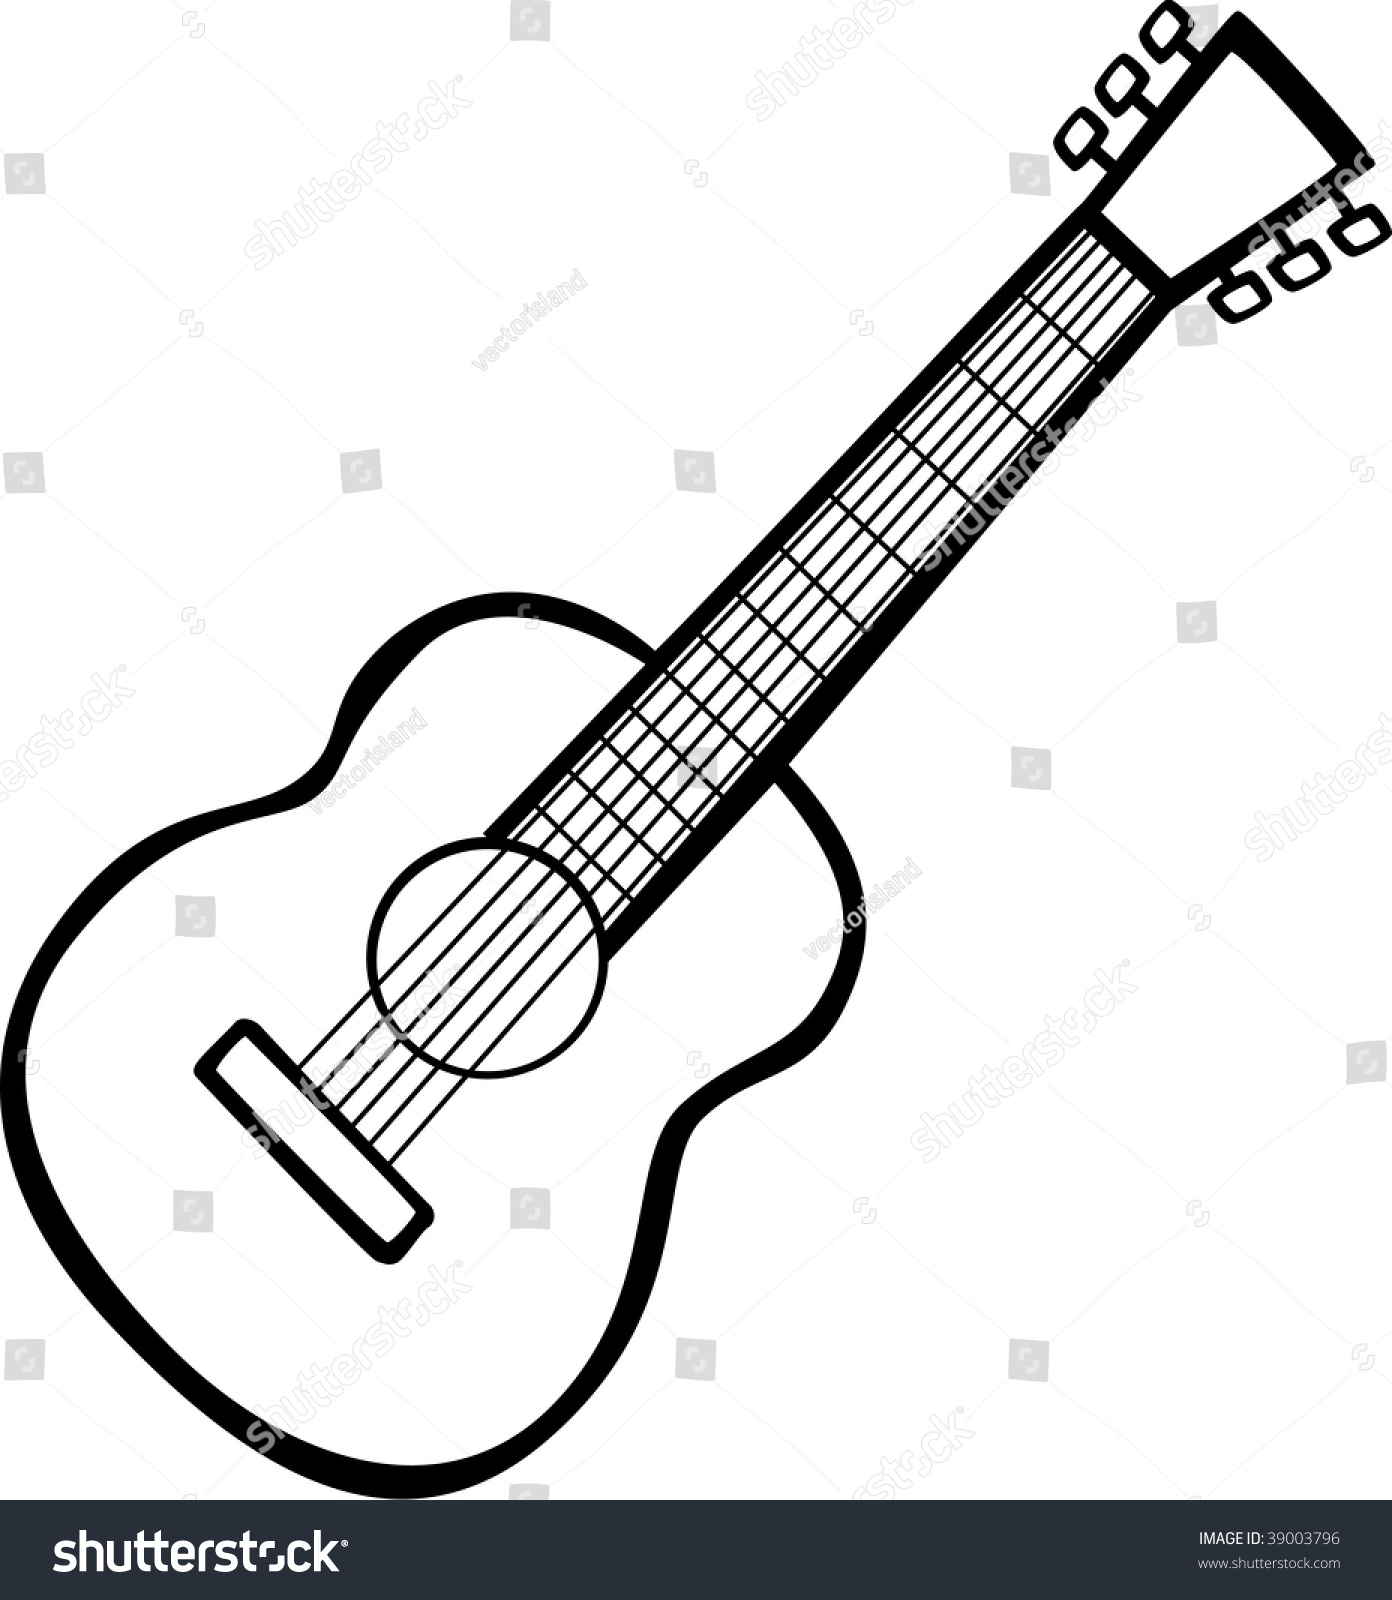 Acoustic guitar chords and